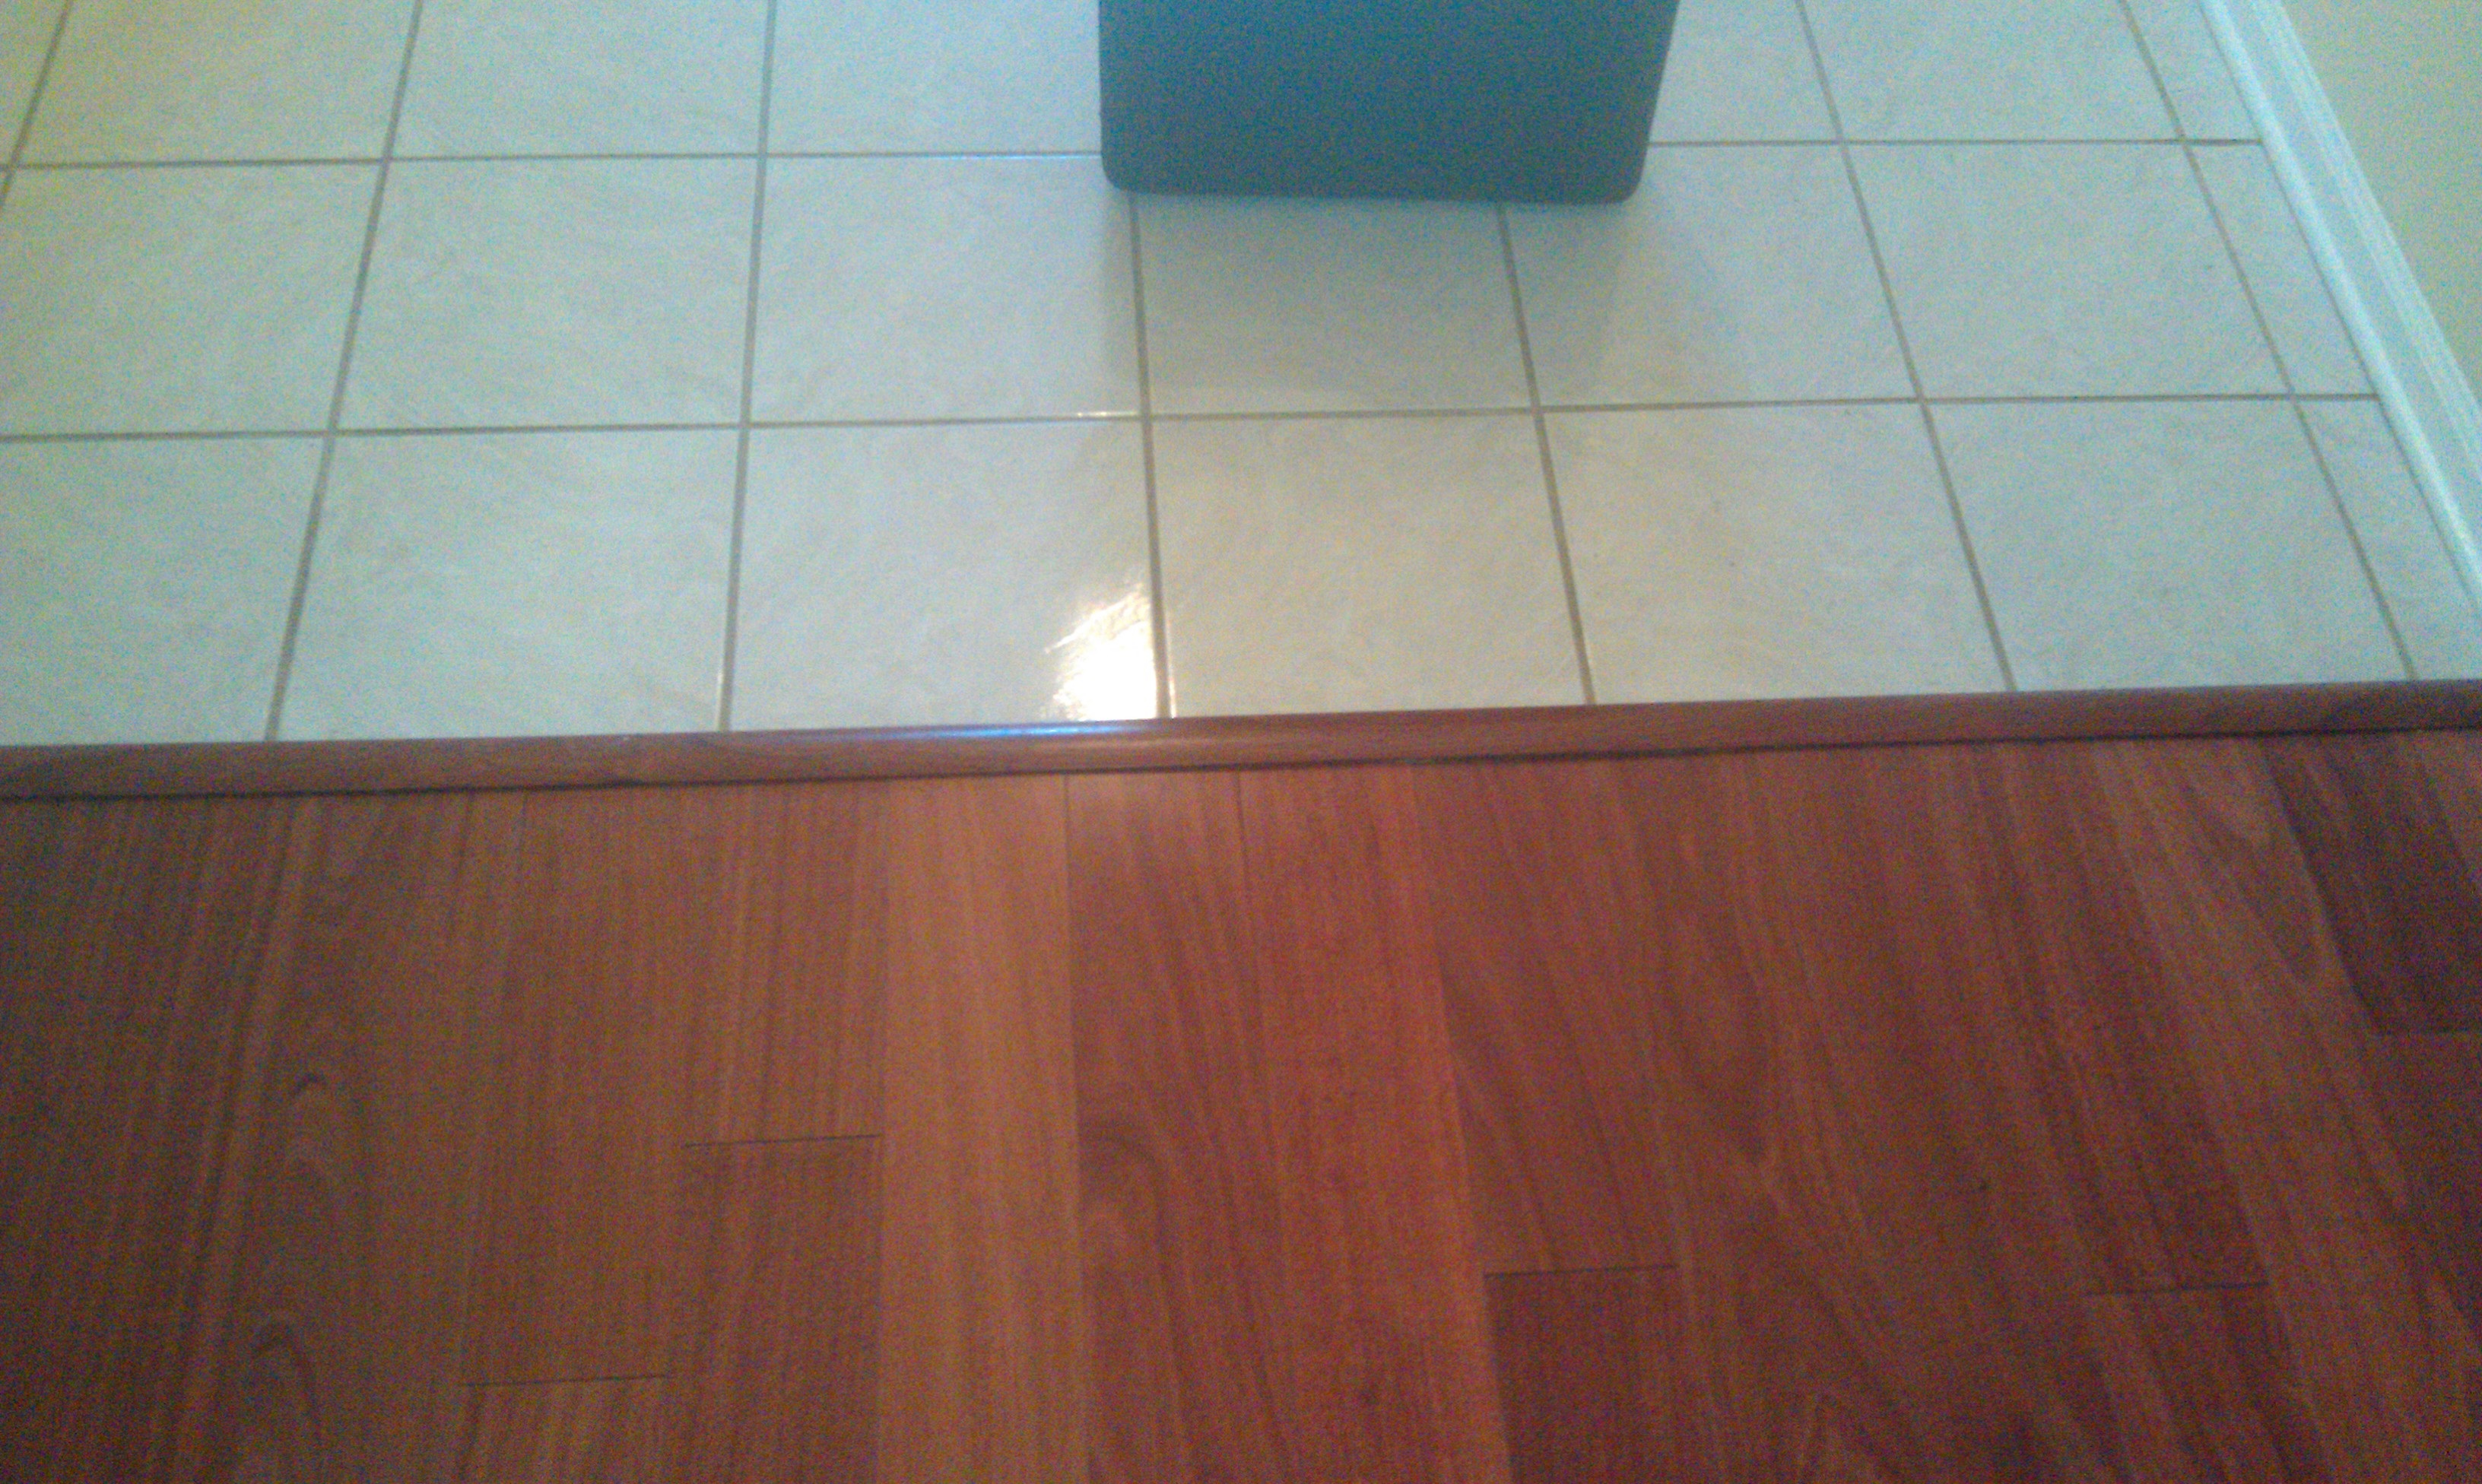 Aaa residential vinyl flooring contractor in jacksonville for Flooring contractors